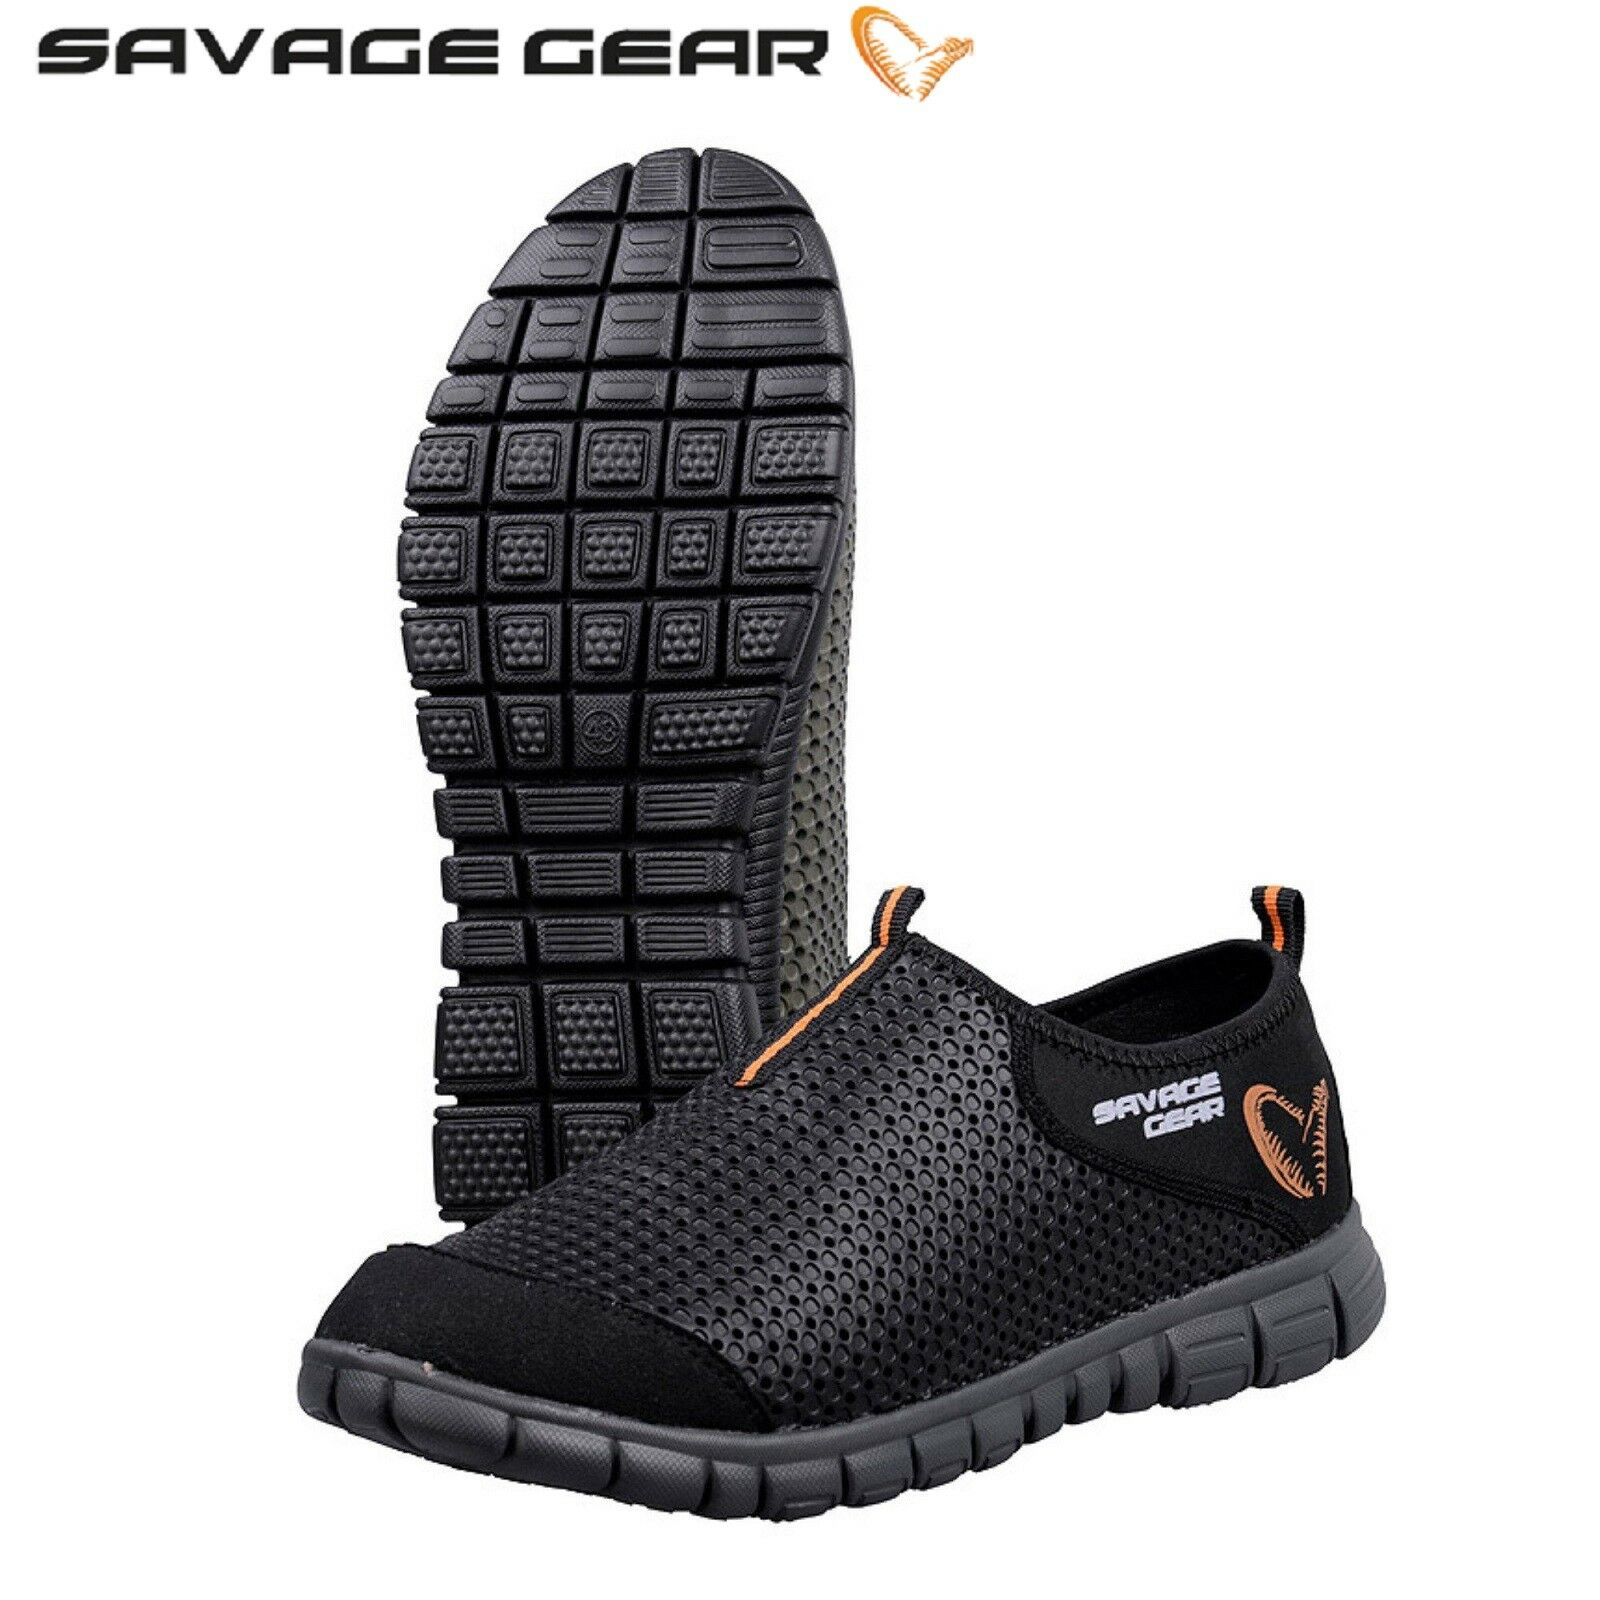 Savage Gear CoolFit Fishing shoes 41 -46   8 -13   Various Sizes